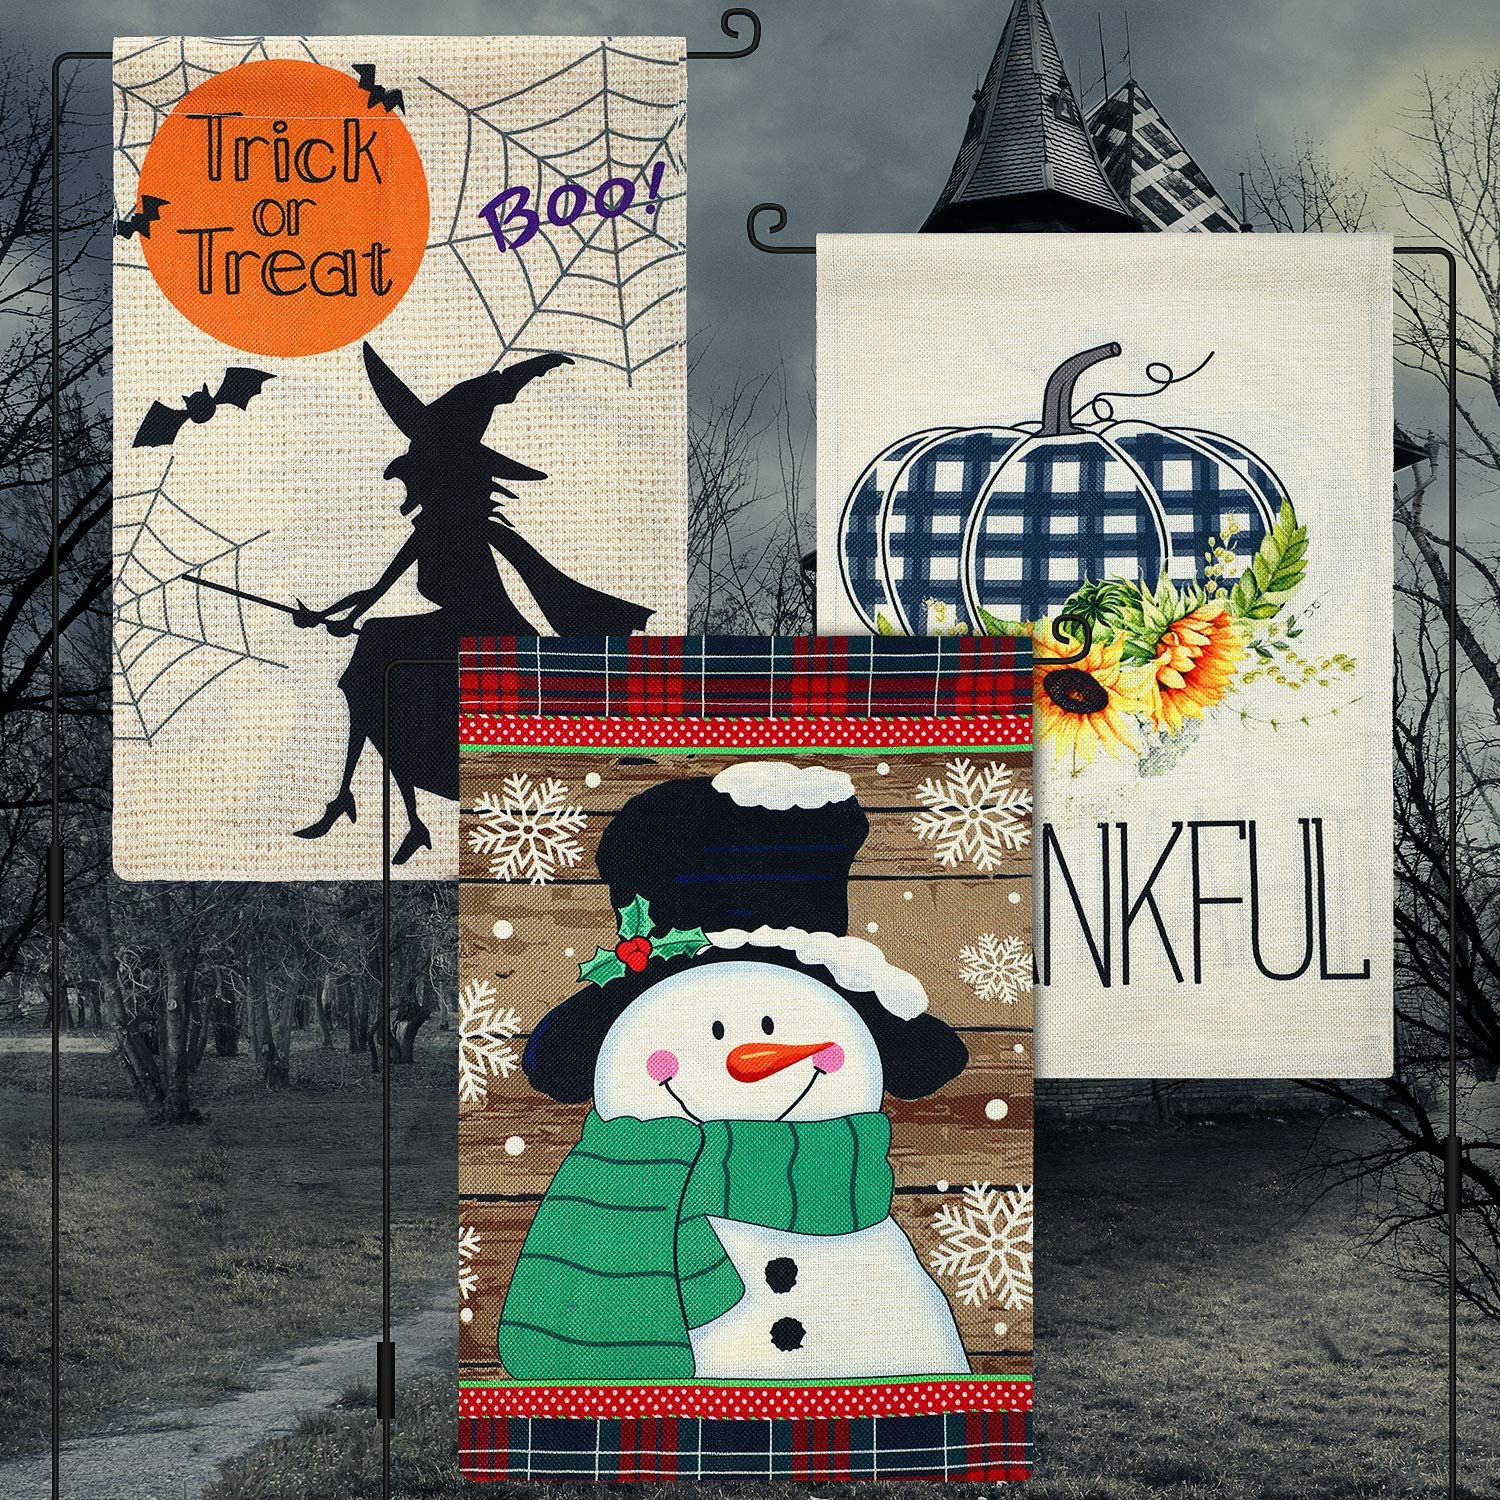 Tatuo 3 Pieces Christmas Flags Seasonal Garden Flags for Christmas Decorations Fall Thanksgiving Christmas Decorations Double Sided Burlap House Flag for Outdoor Yard 12 x 18 Inch